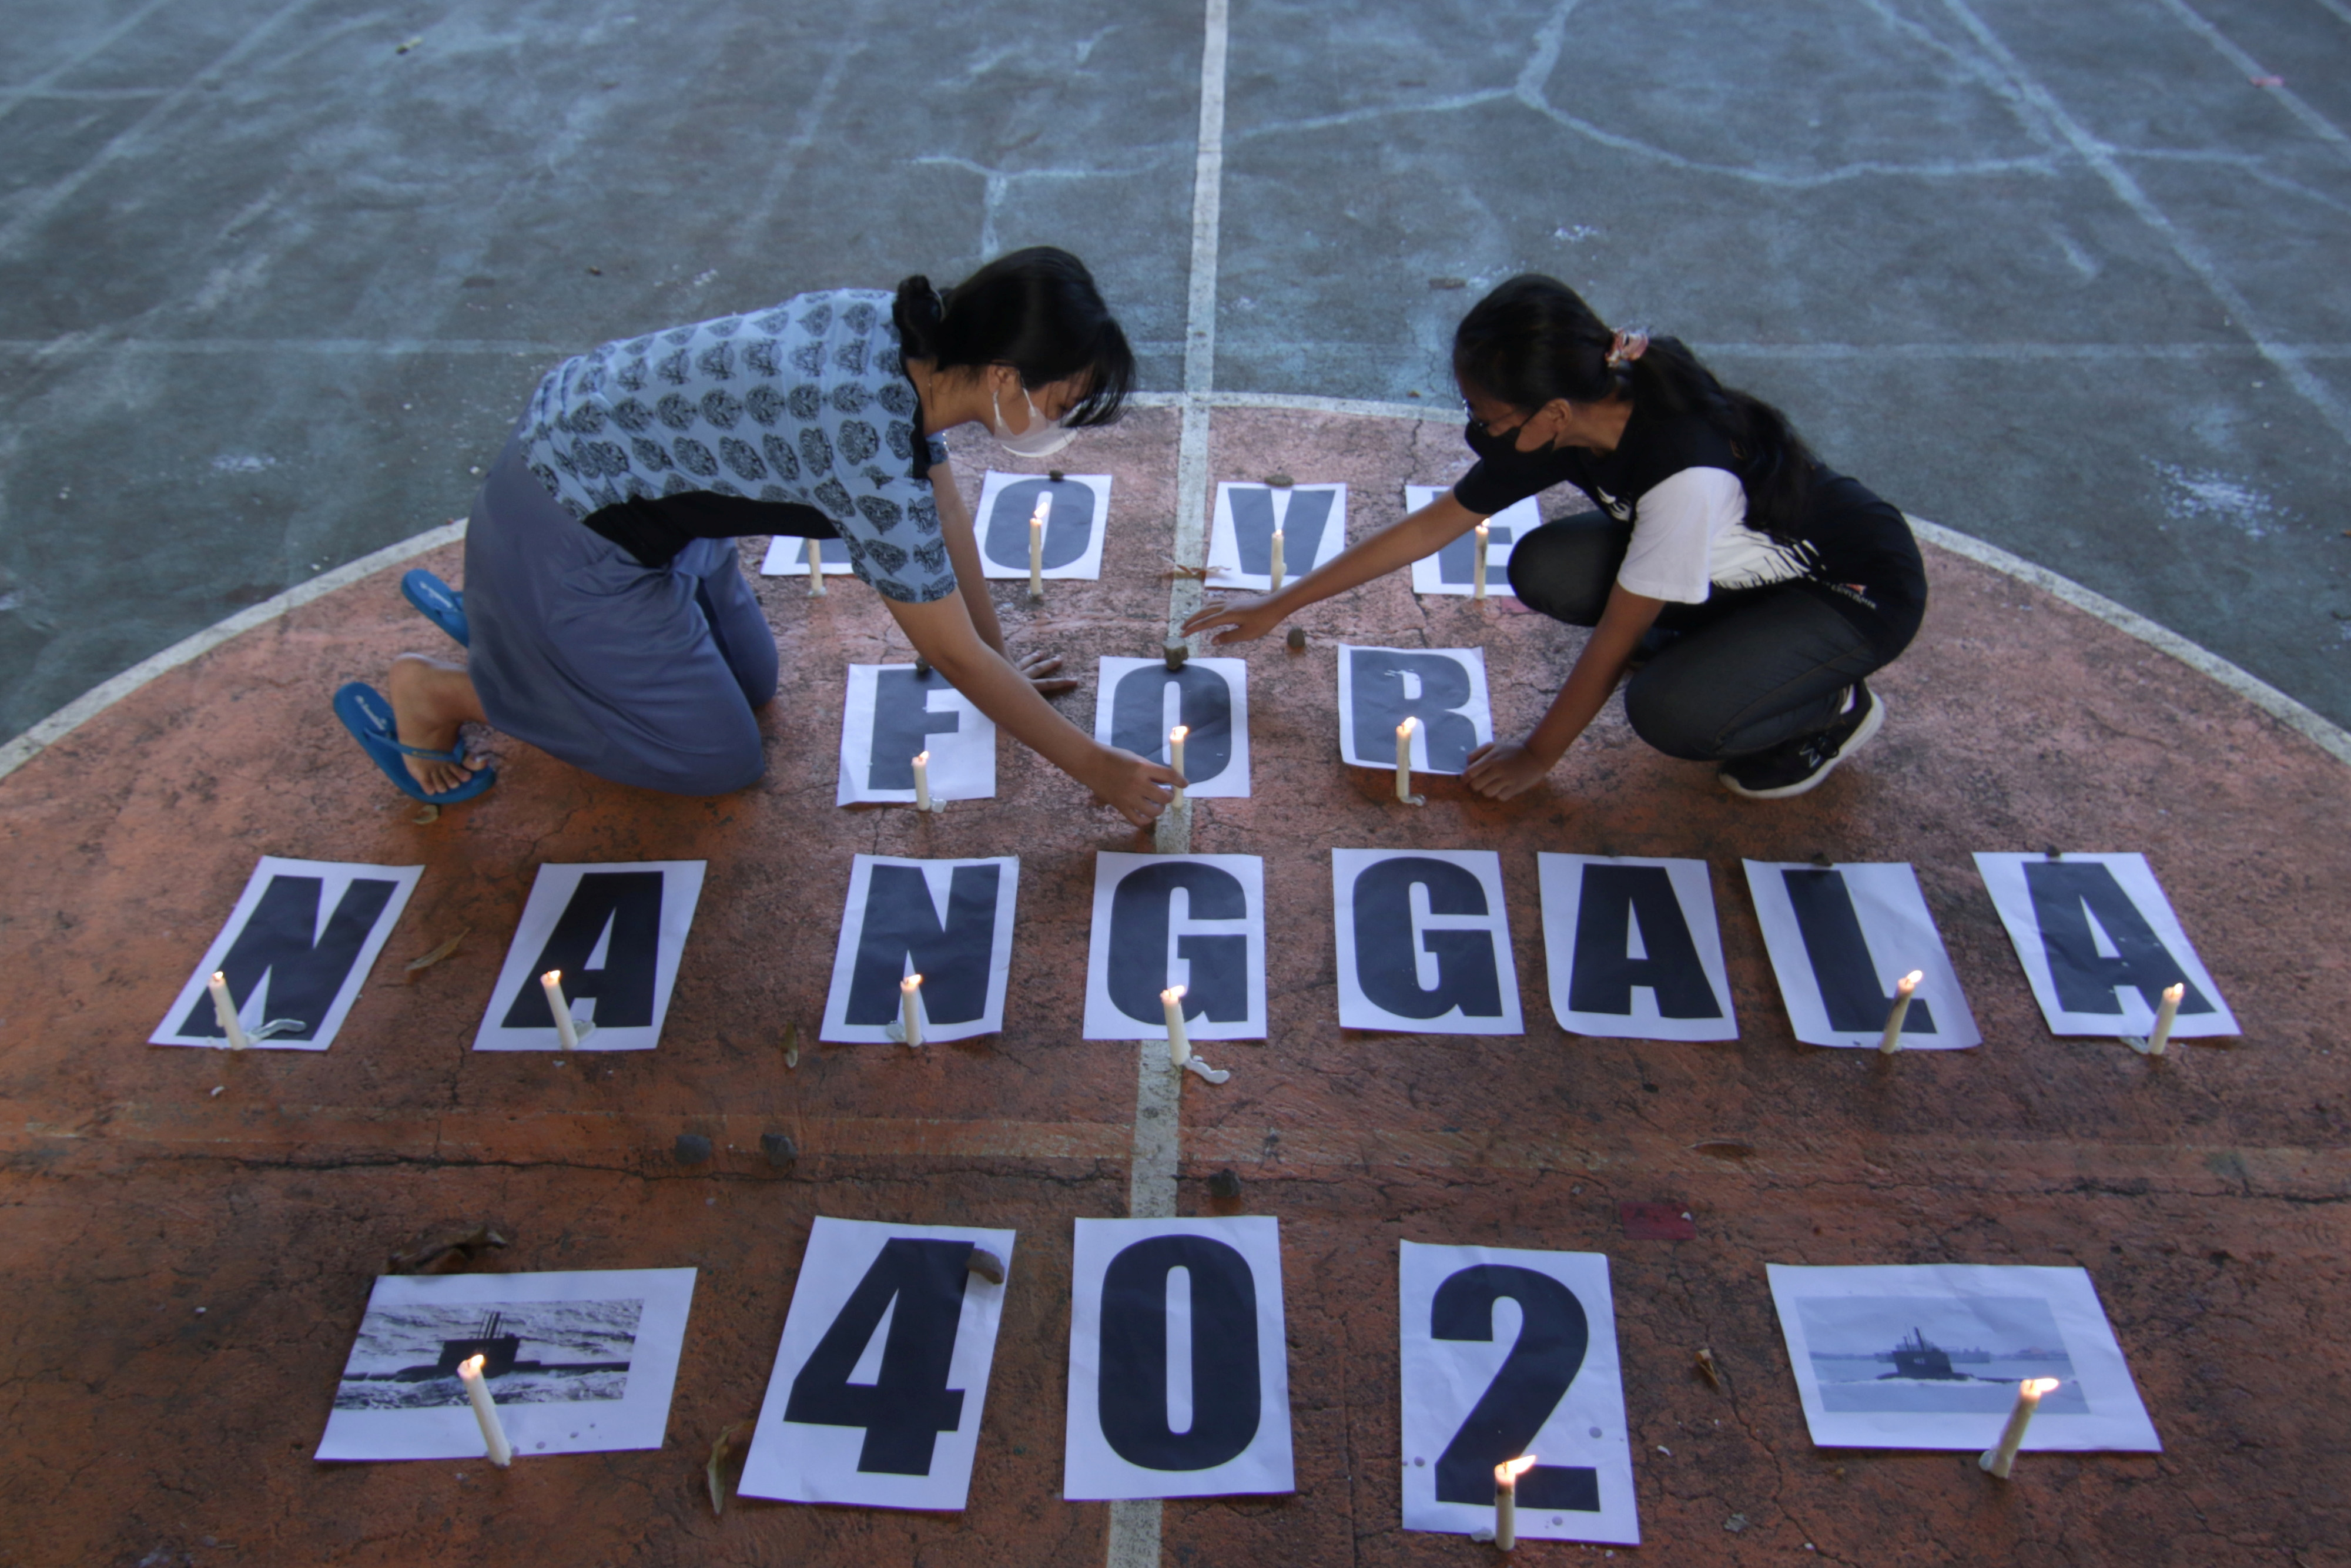 Students arrange the candles during a vigil for crew members who onboard the submarine KRI-402, sunk at the north Bali sea during a drill, in Banyuwangi, East Java province, Indonesia, April 27, 2021 in this photo taken by Antara Foto/Budi Candra Setya/via REUTERS